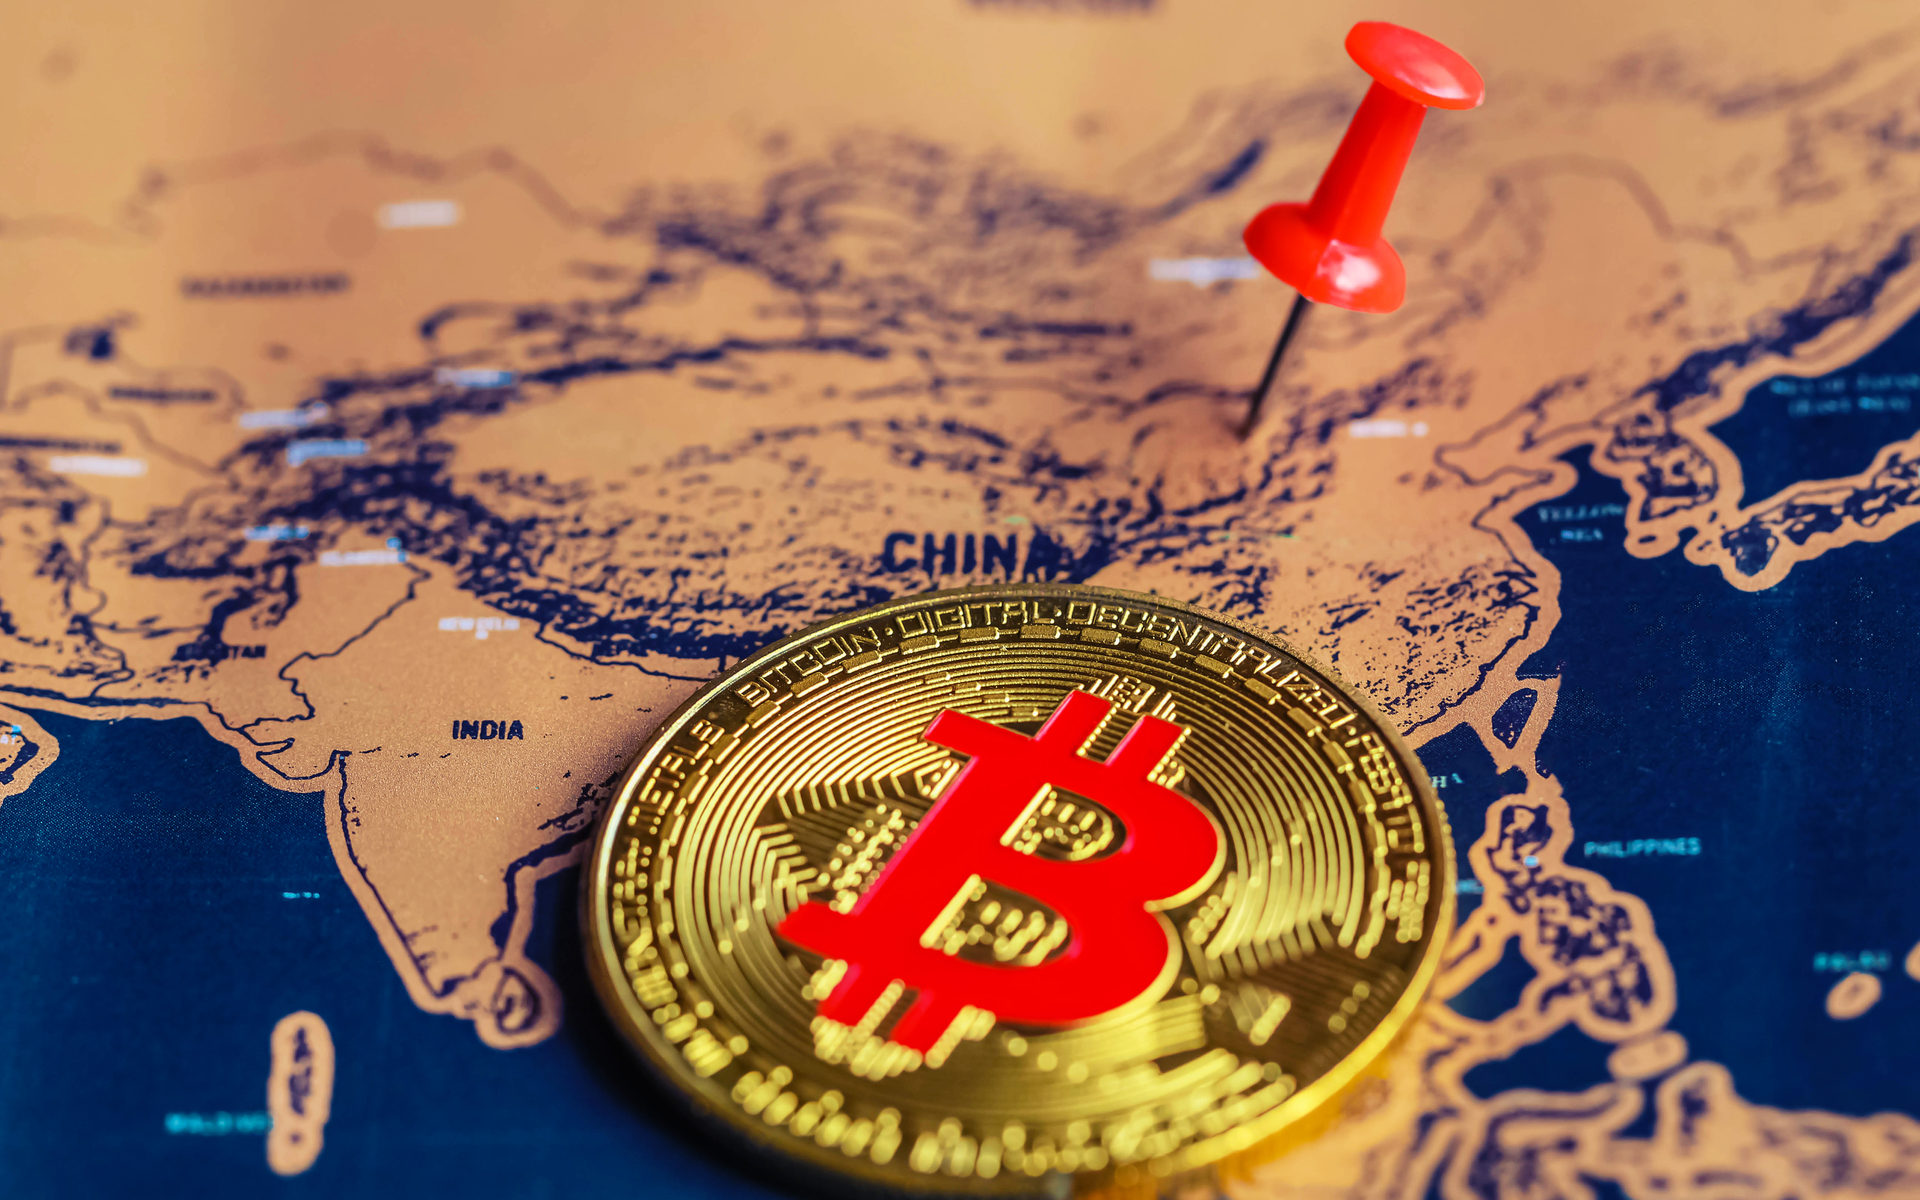 China's Attitude to Crypto Can't Change Significantly in the Short Term: Expert